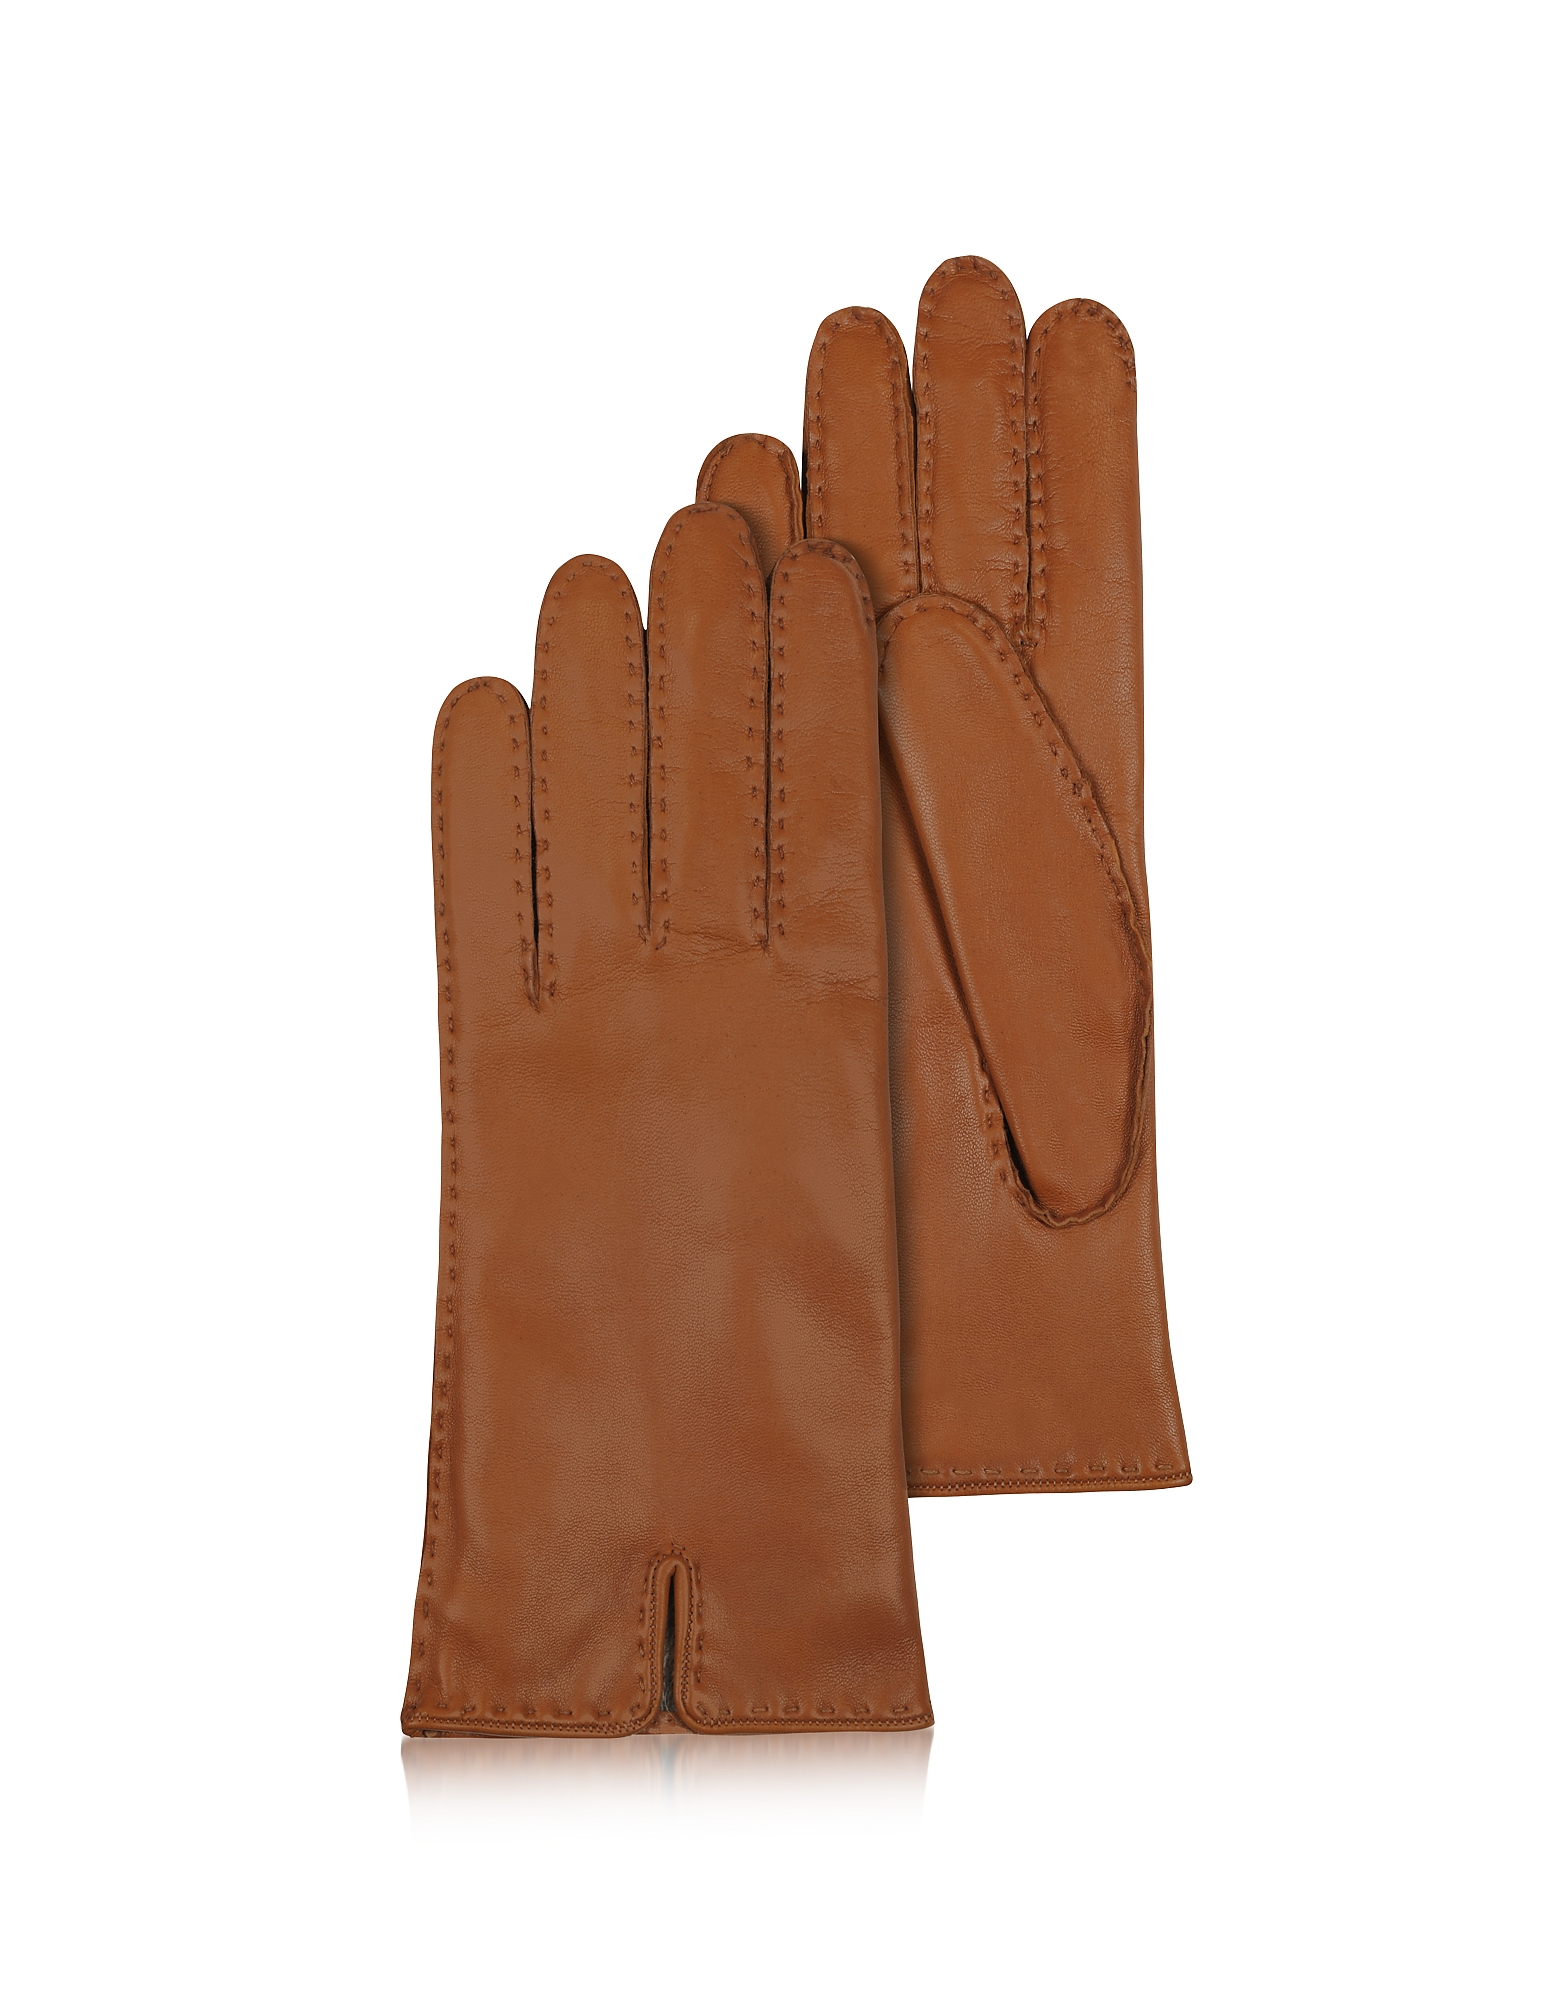 Forzieri Women's Gloves, Women's Cashmere Lined Brown Italian Leather Gloves